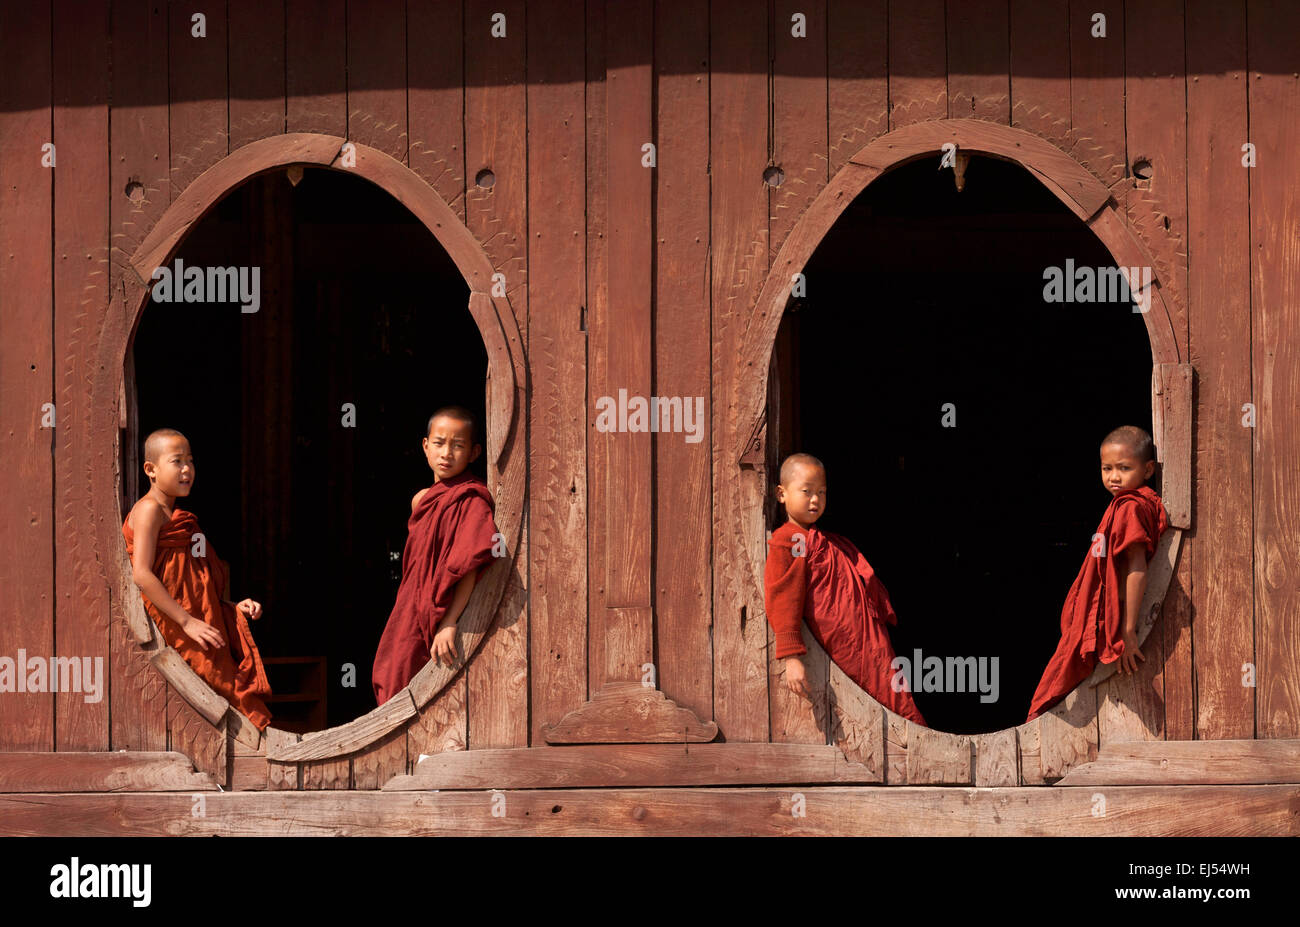 four-young-buddhist-monks-at-the-windows-shweyanpyay-monastery-in-EJ54WH.jpg